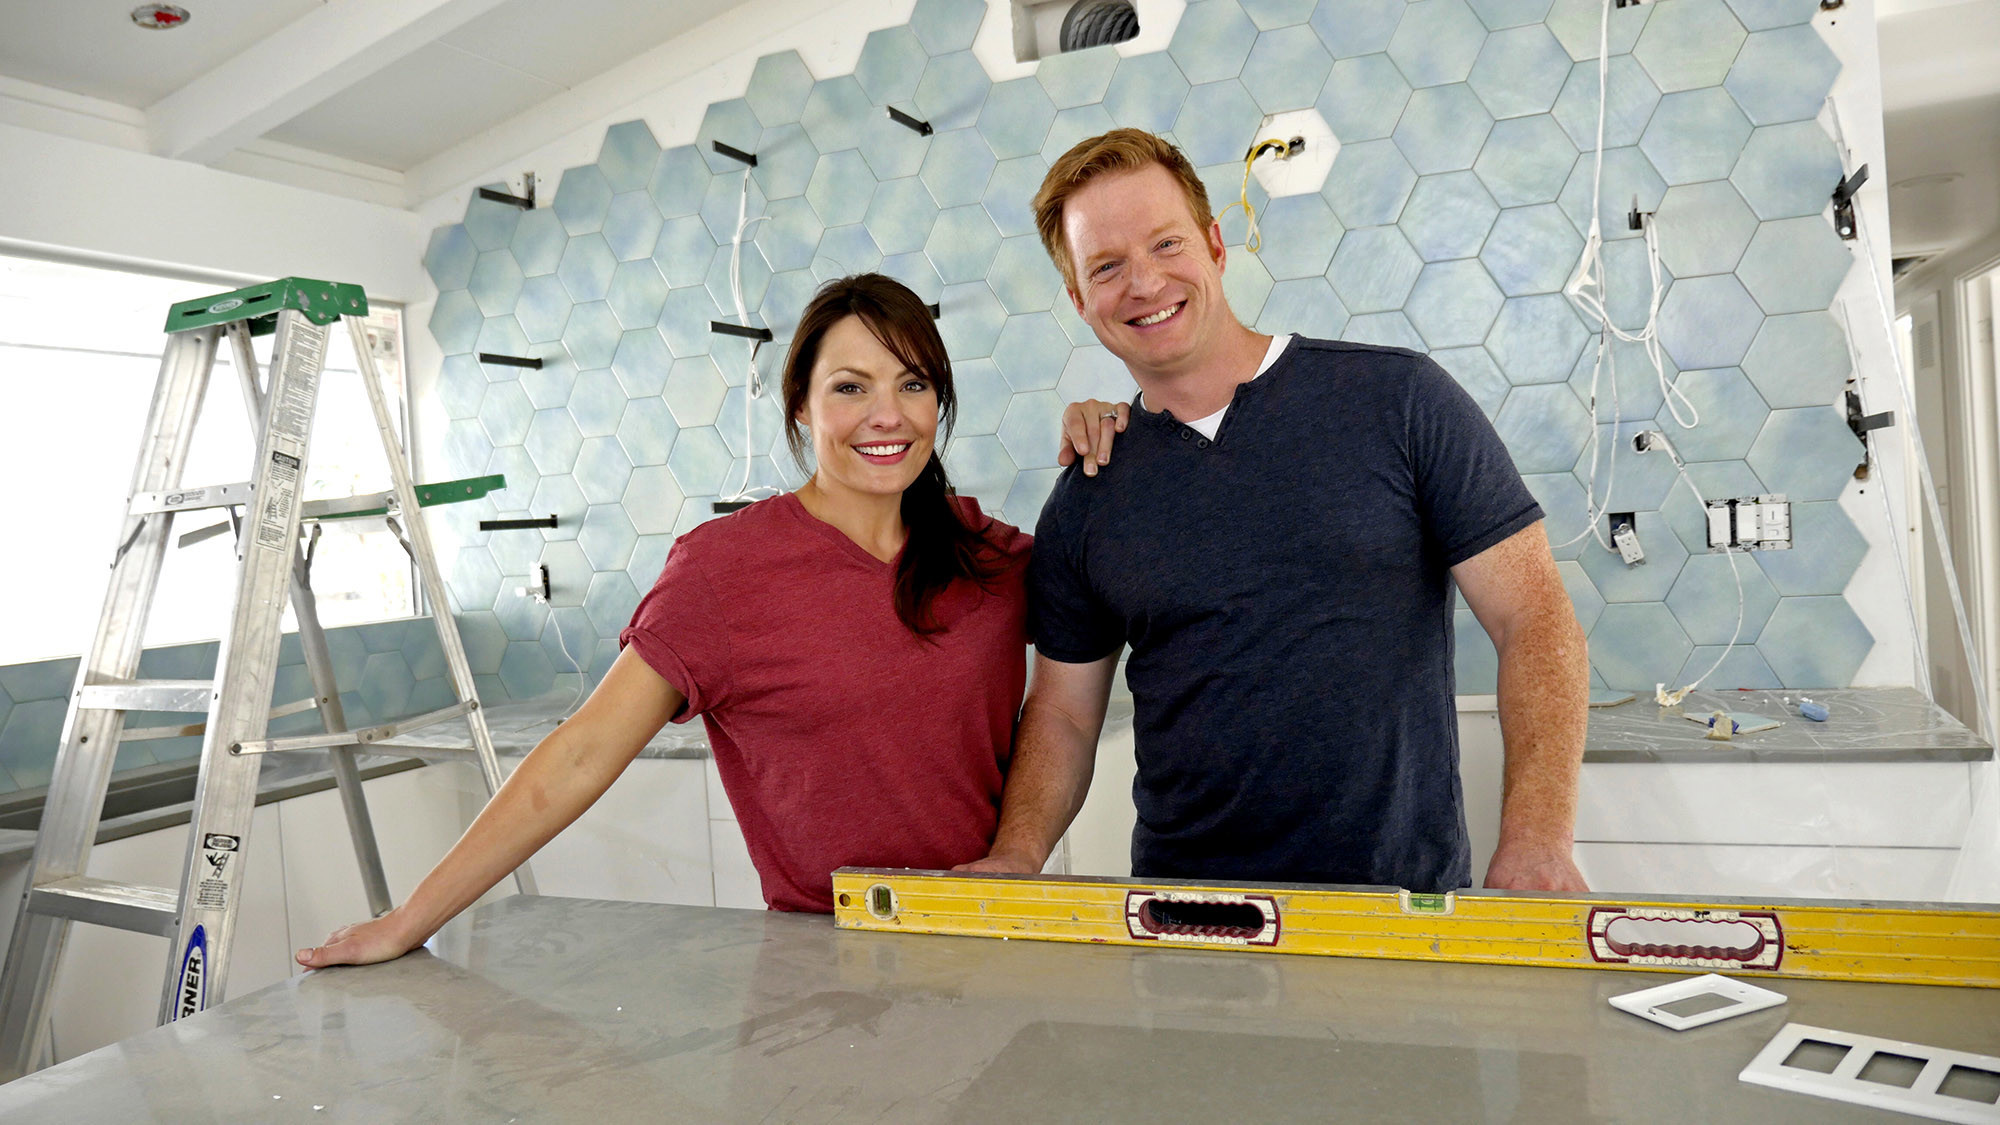 HGTV's 'Desert Flippers' puts a Midwestern spin on Palm Springs midcentury design